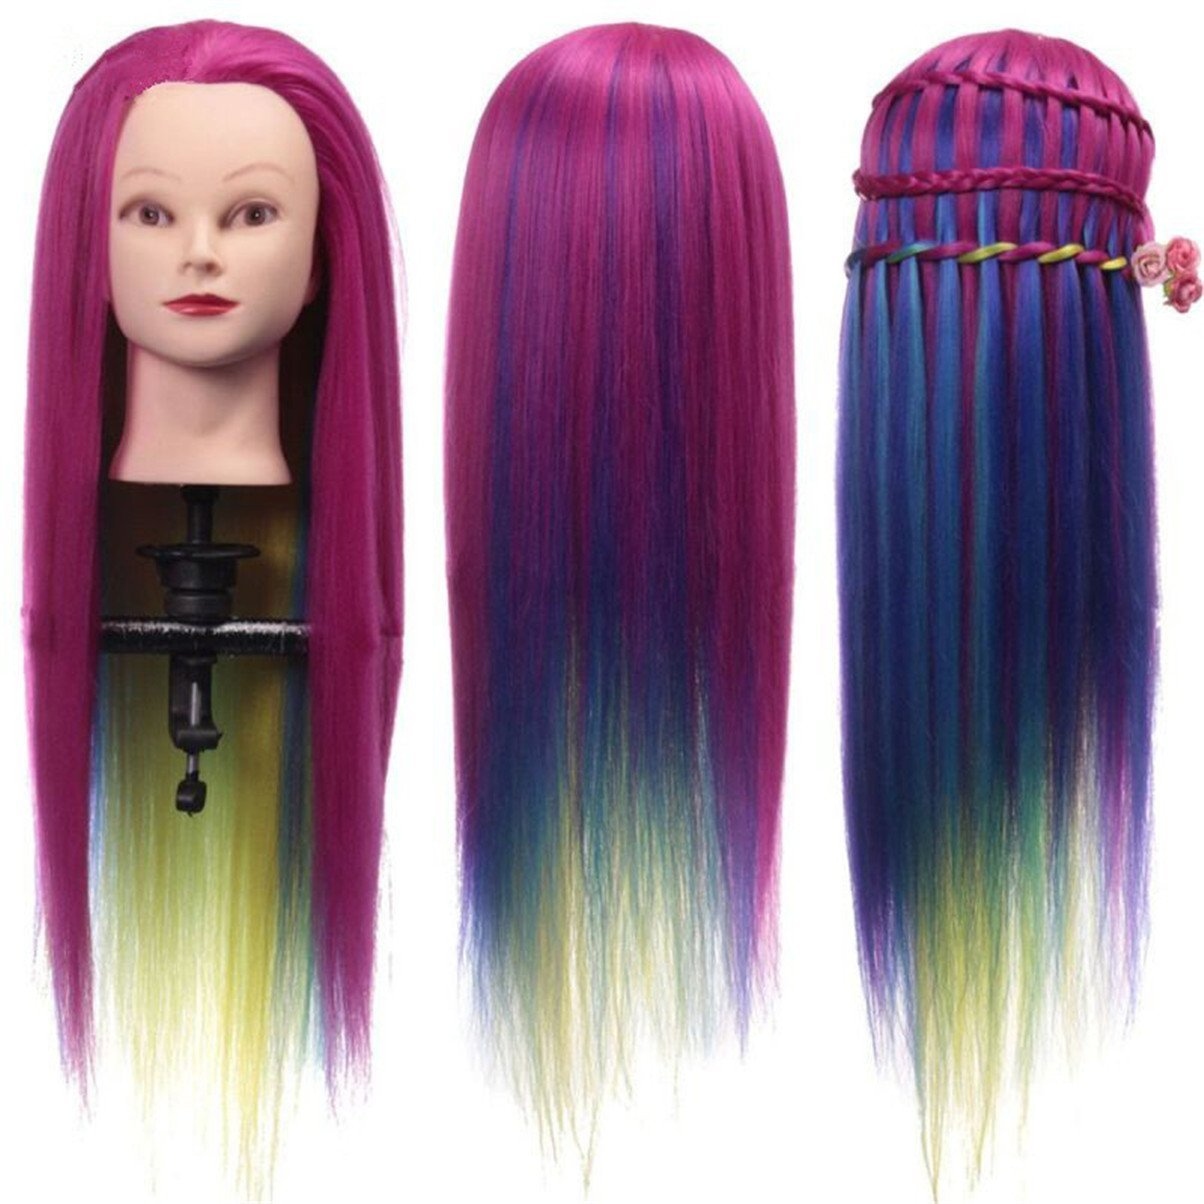 Amazon.com : Cool2day Colorful Mannequin Head Hairstyles ...